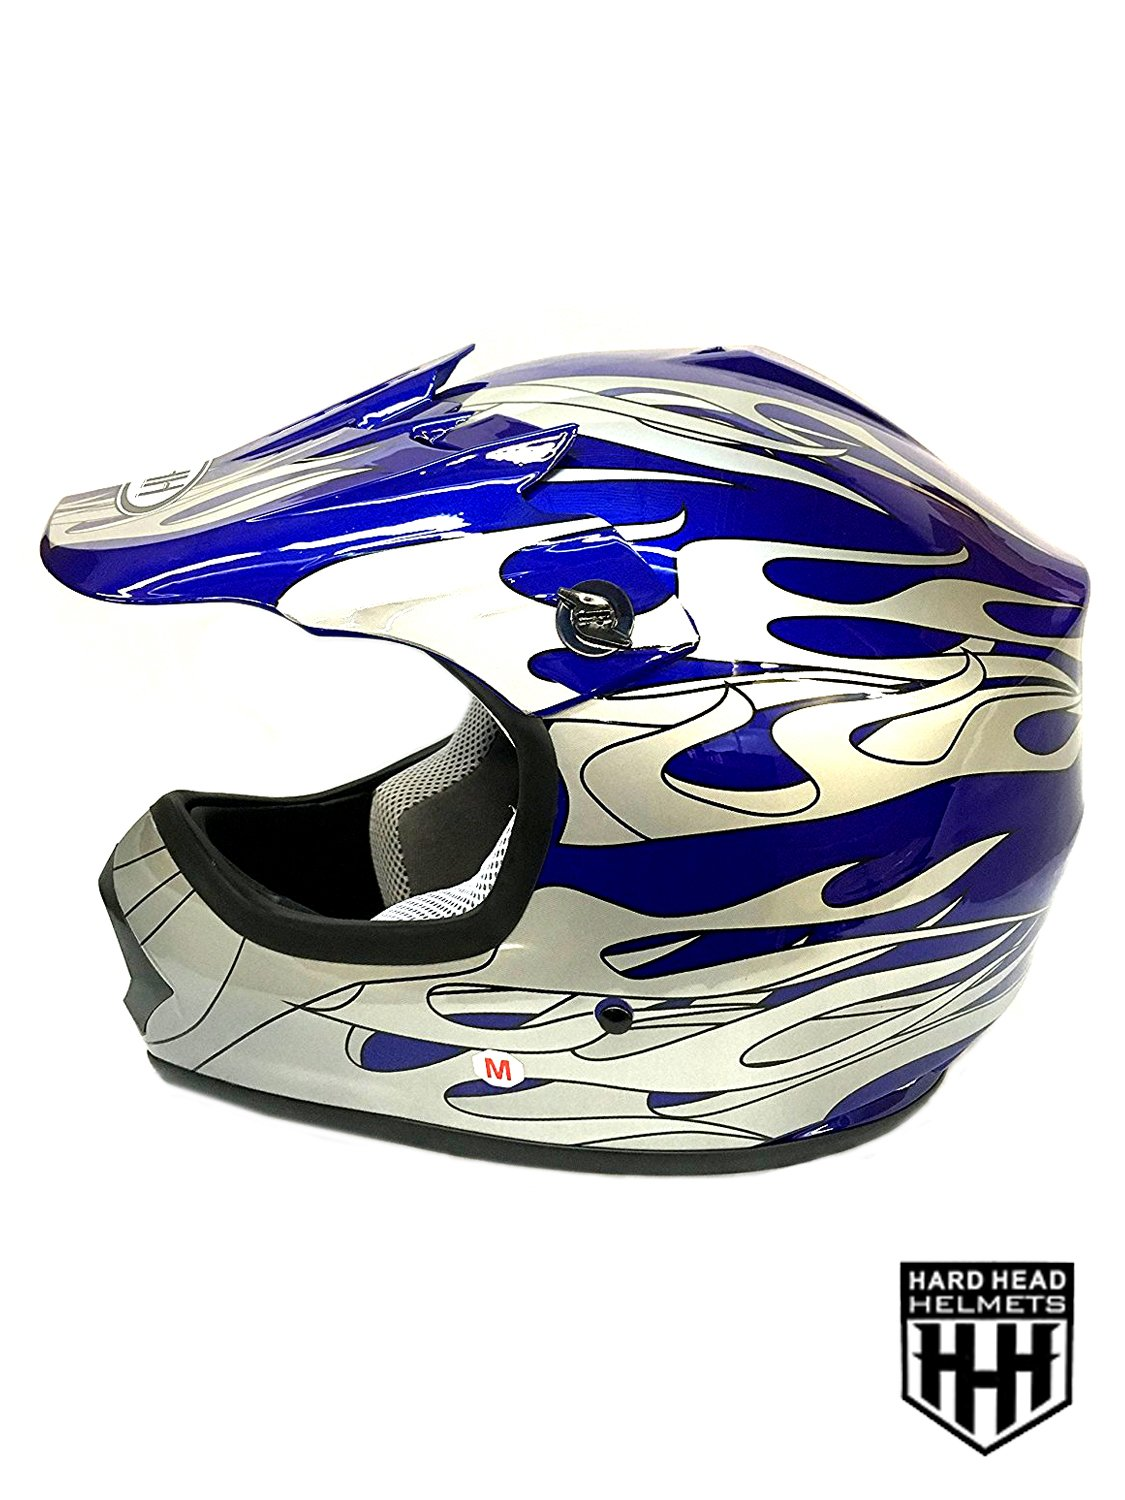 SmartDealsNow YOUTH DOT Helmet Blue Flame Color Dirt Bike Style Youth Model Medium